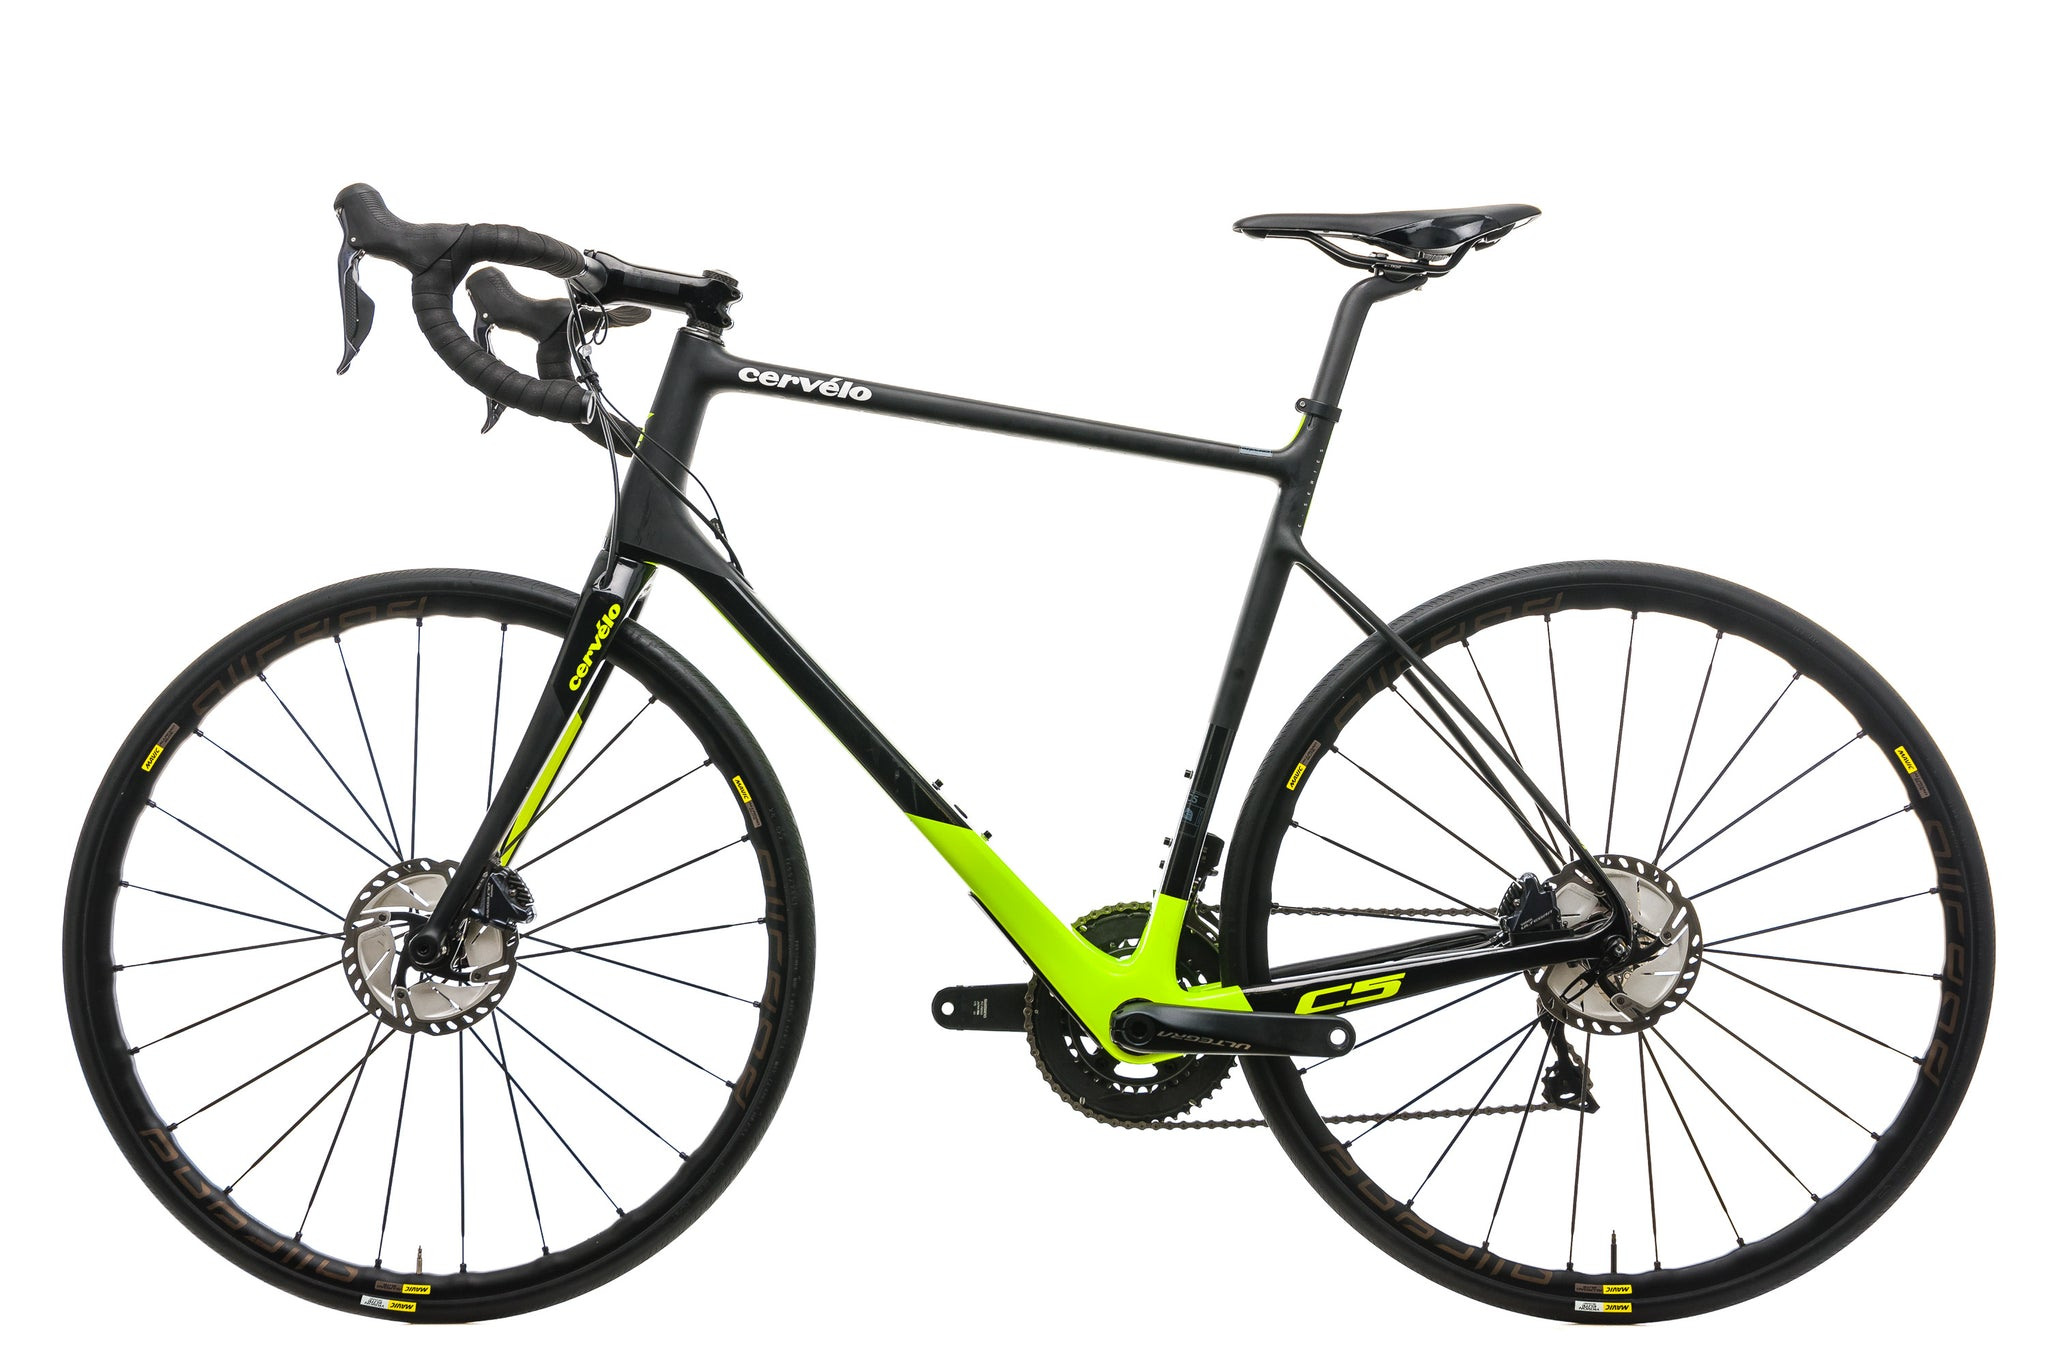 Cervelo C5 Ultegra Di2 Road Bike - 2018, 58cm non-drive side